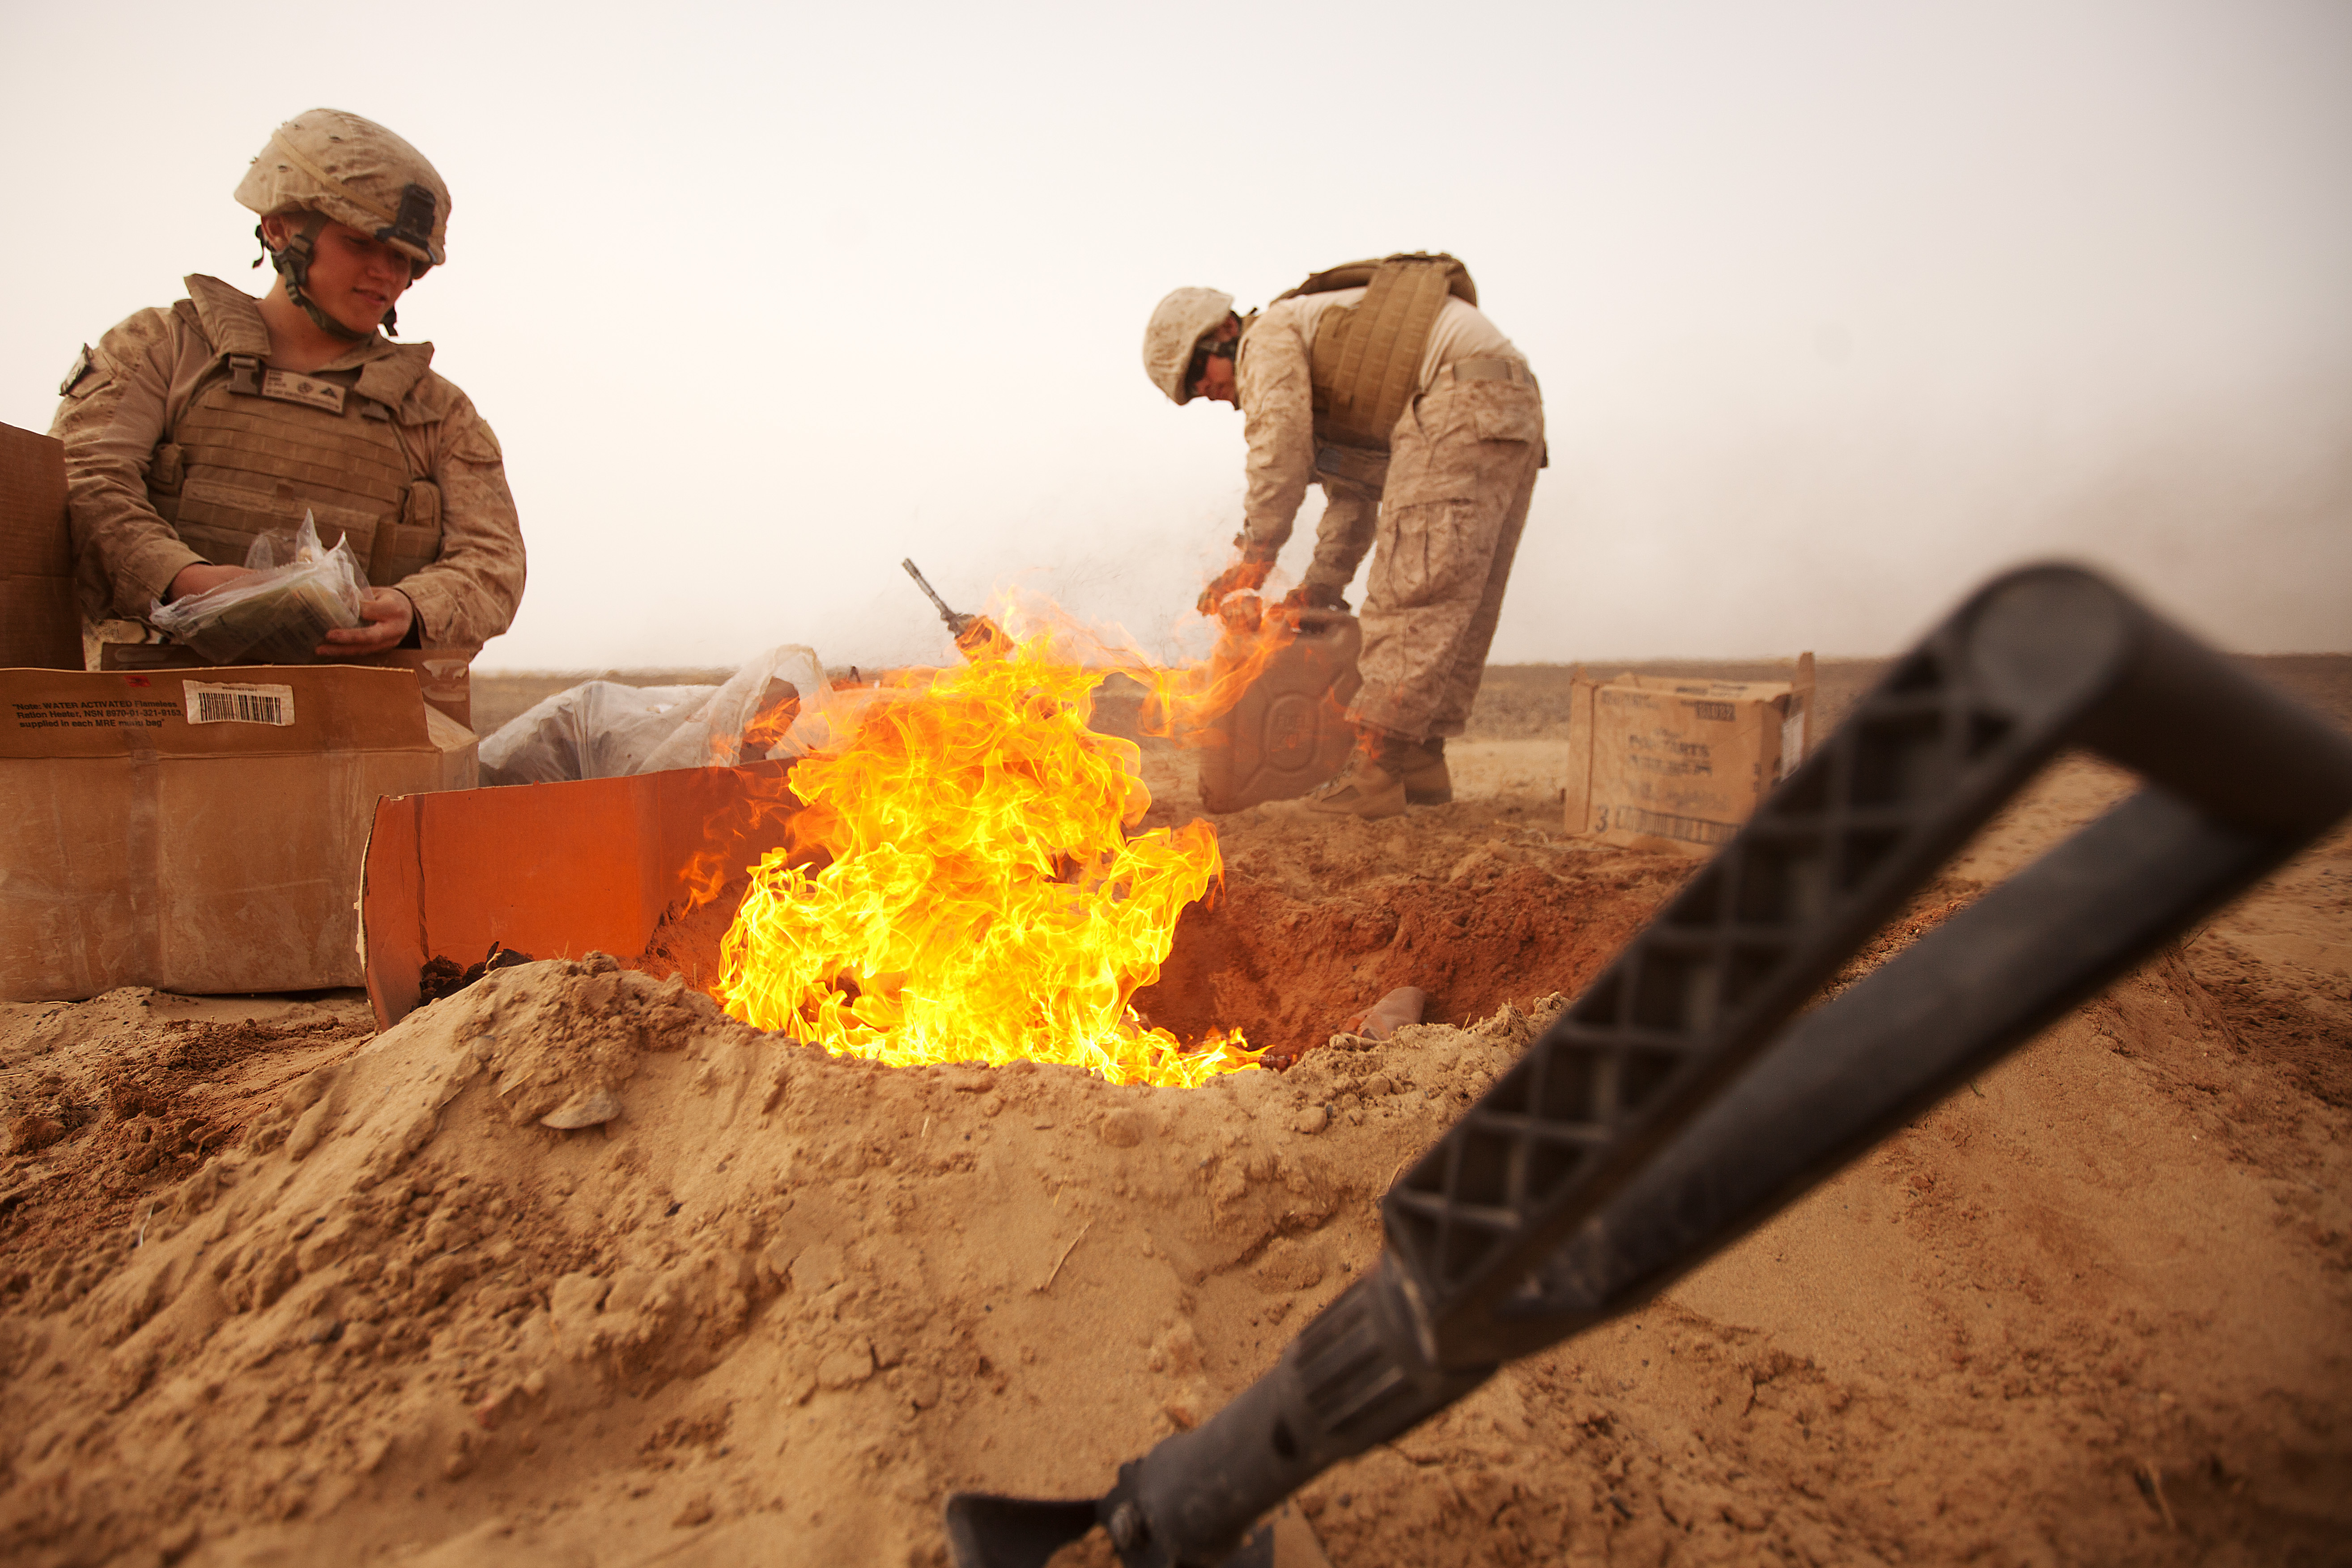 5 Wyoming veterans sue company over toxic burn pits in Iraq